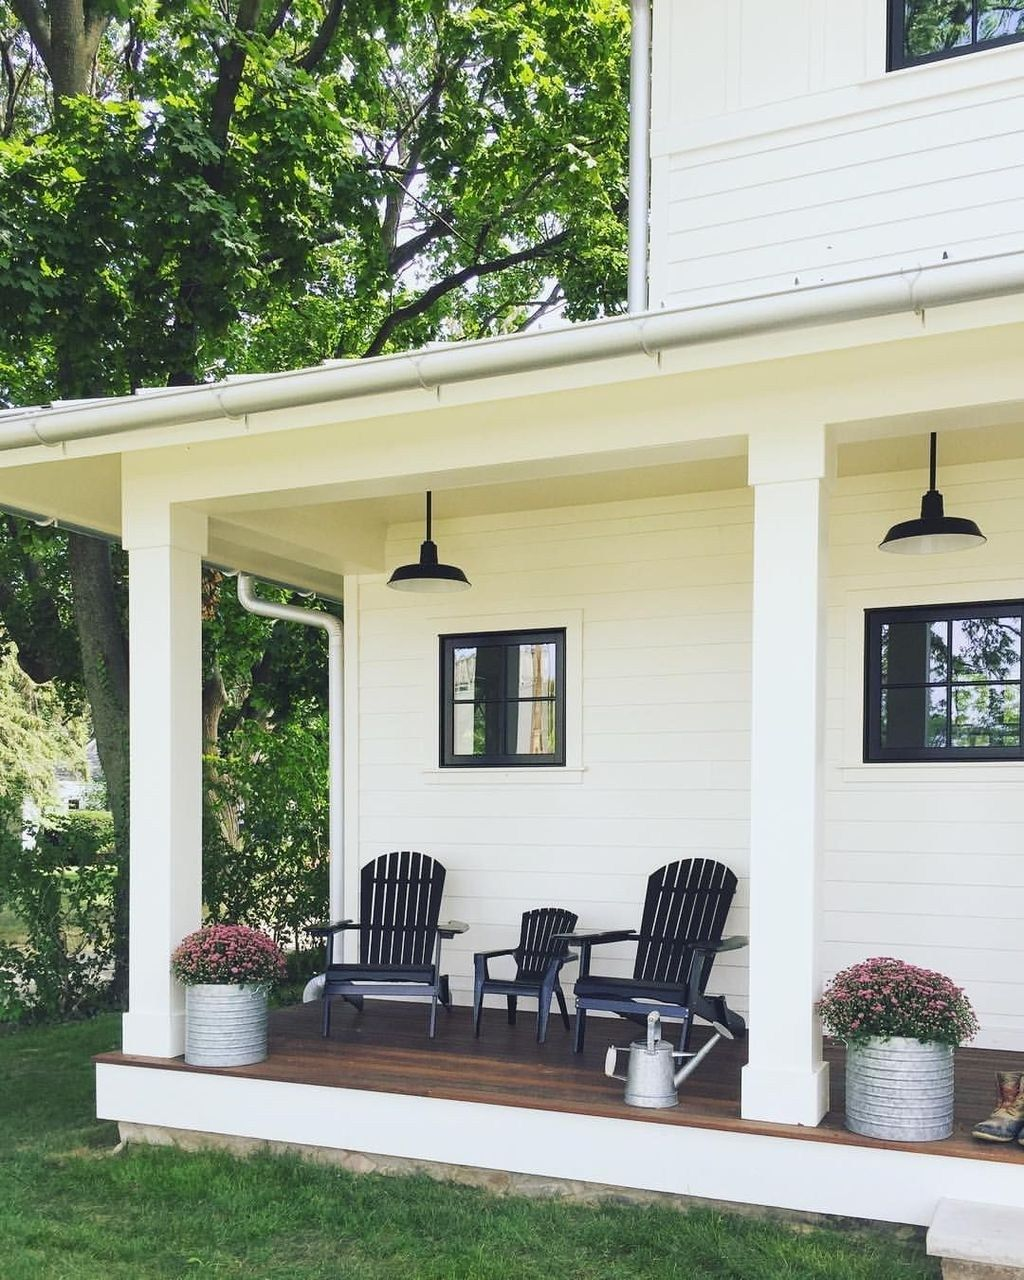 38 Great Farmhouse Porch Ideas To Modify Your Ordinary Porch Trendehouse Front Porch Remodel House With Porch Porch Remodel